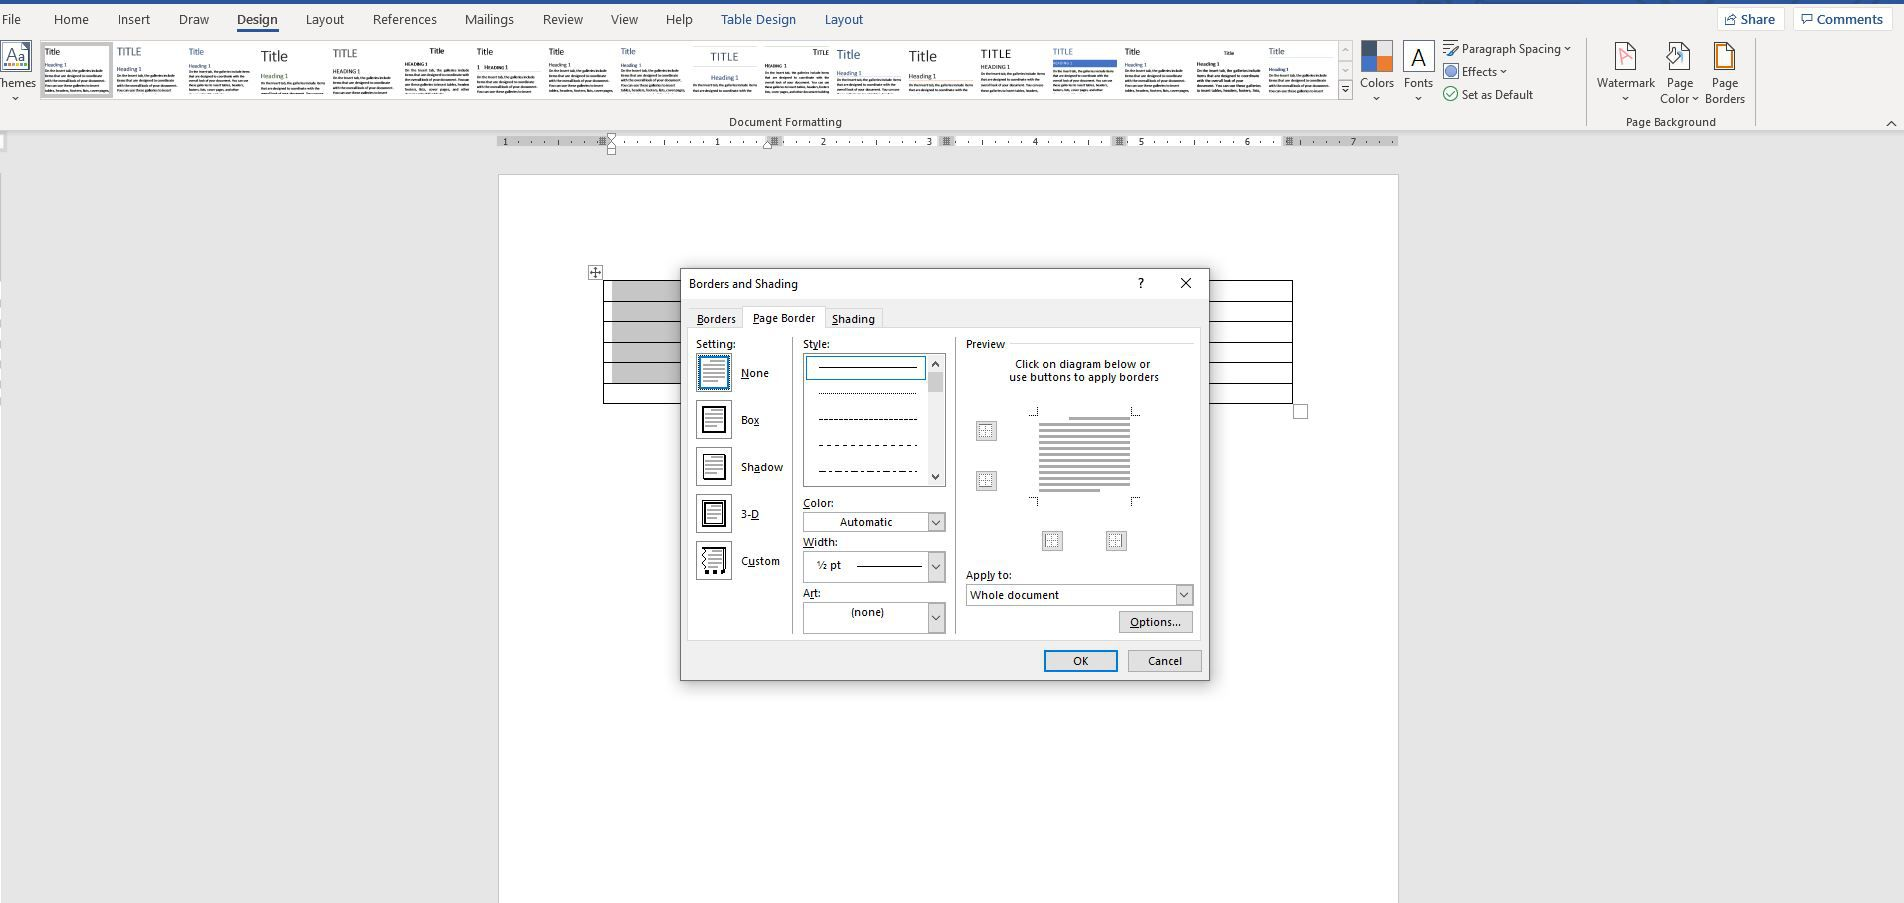 Screenshot of Page Borders in Page Background group of Design tab